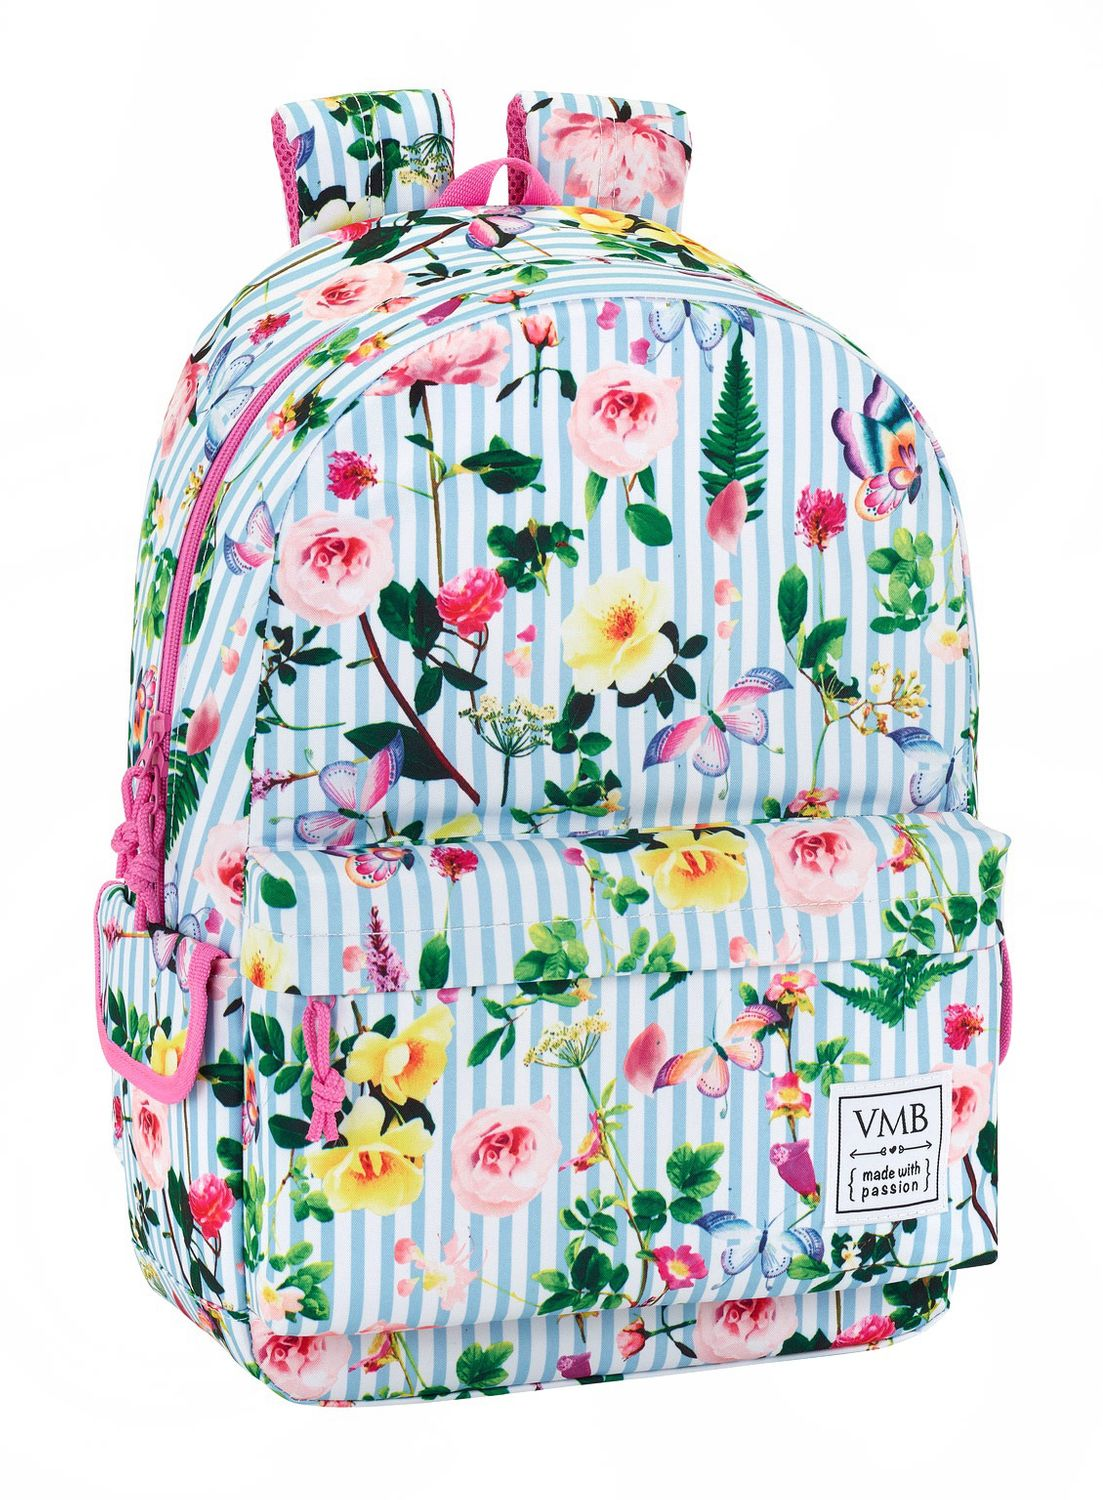 "VICKY MARTIN BERROCAL ""GARDEN"" Large Backpack 46 cm"